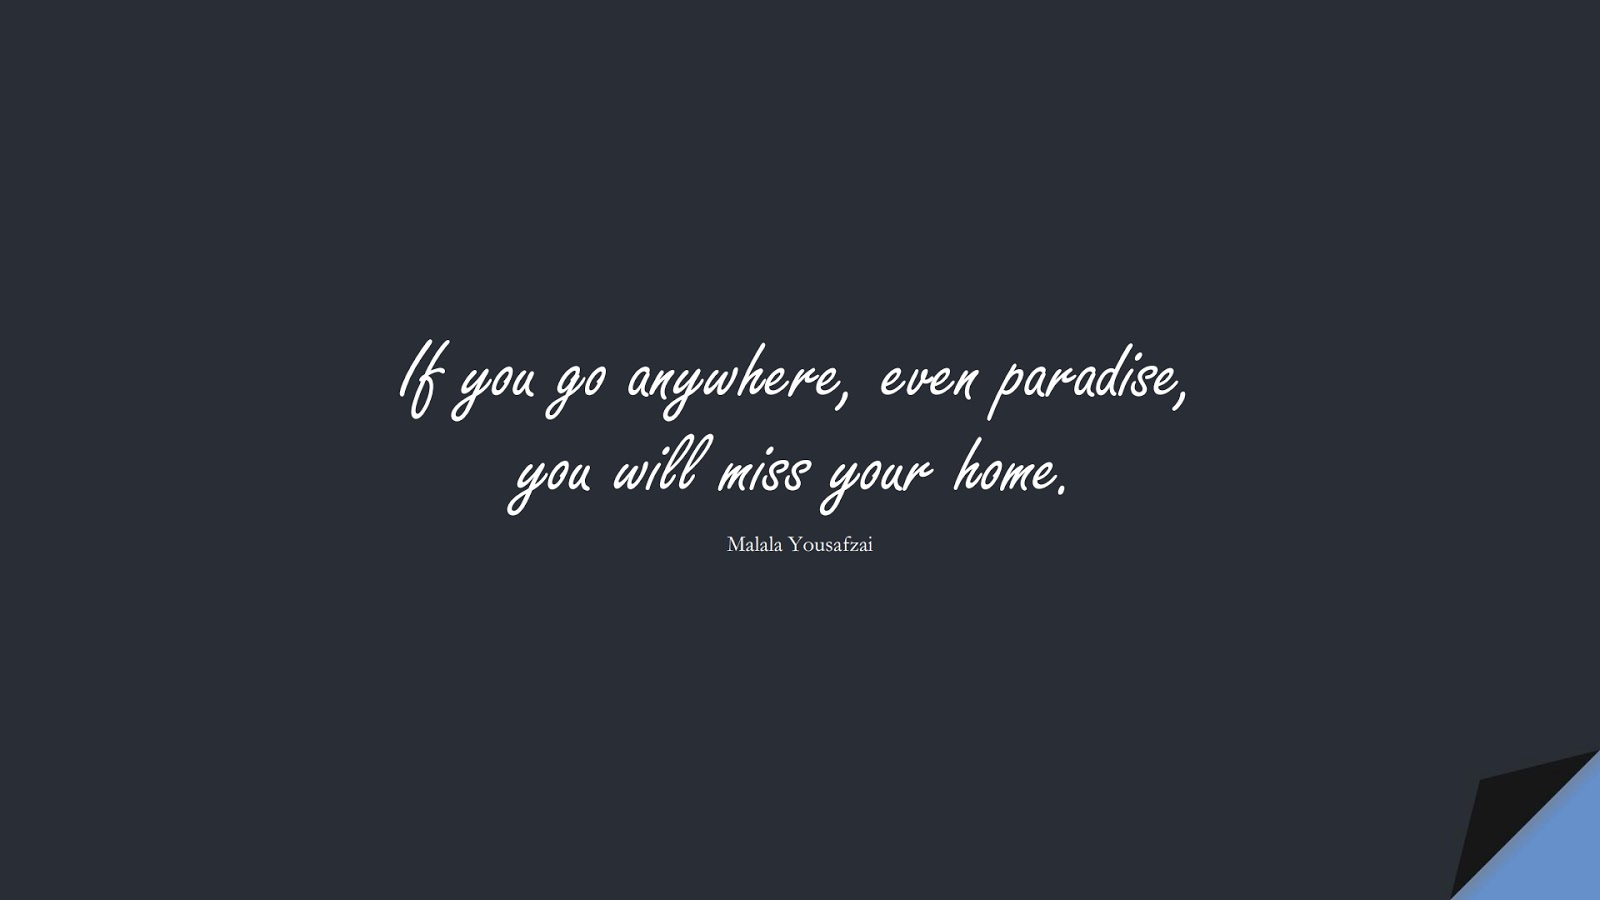 If you go anywhere, even paradise, you will miss your home. (Malala Yousafzai);  #FamilyQuotes